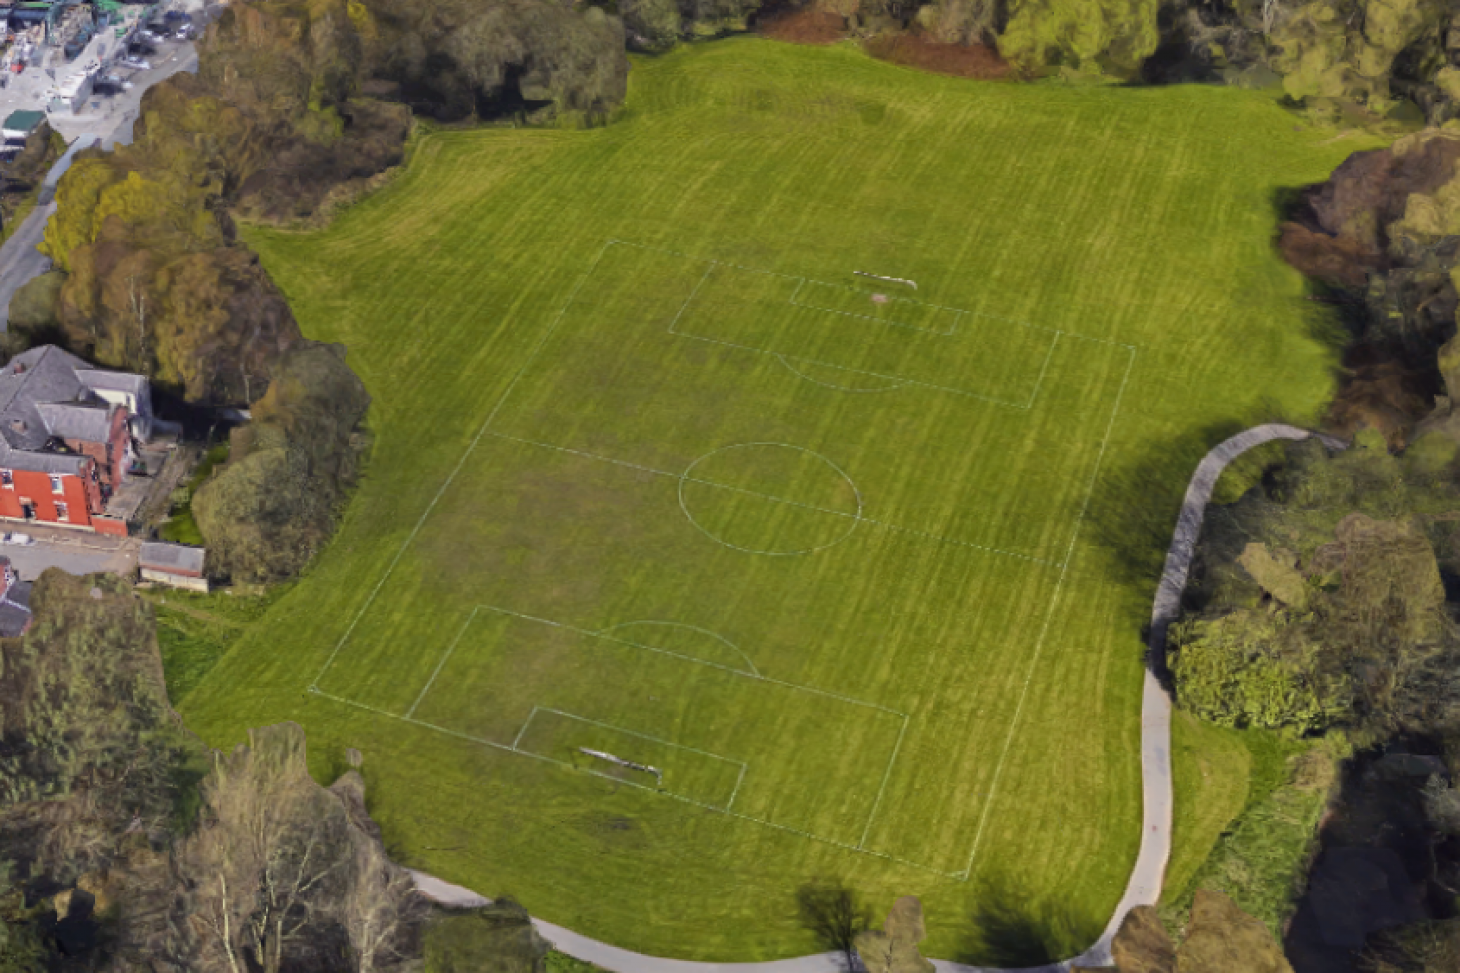 Lower Crumpsall 11 a side | Grass football pitch